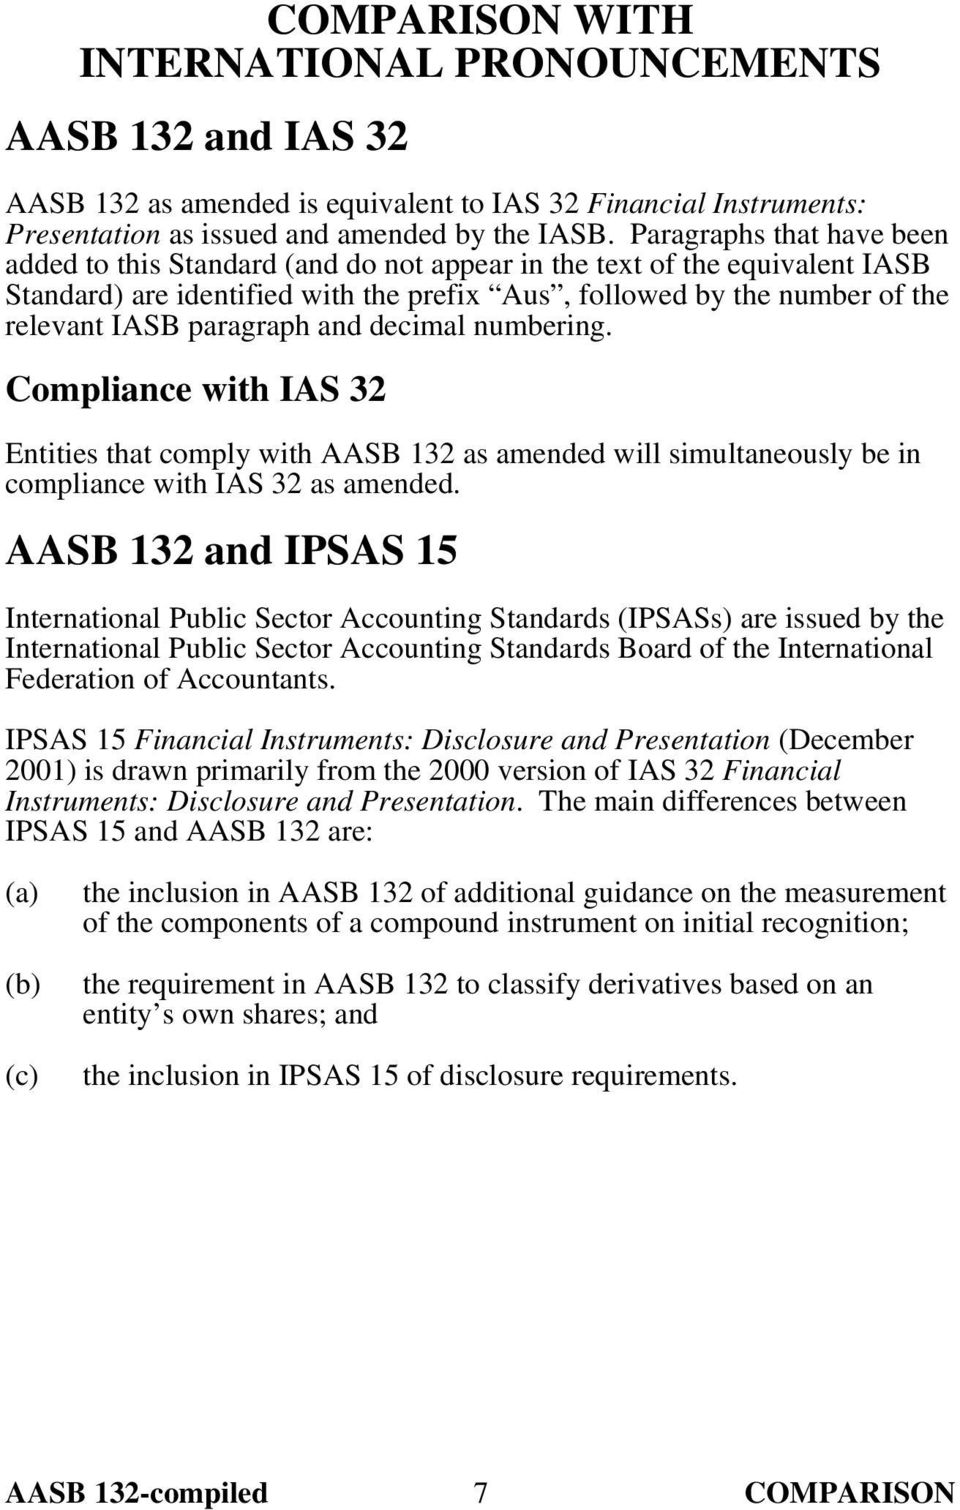 paragraph and decimal numbering. Compliance with IAS 32 Entities that comply with AASB 132 as amended will simultaneously be in compliance with IAS 32 as amended.